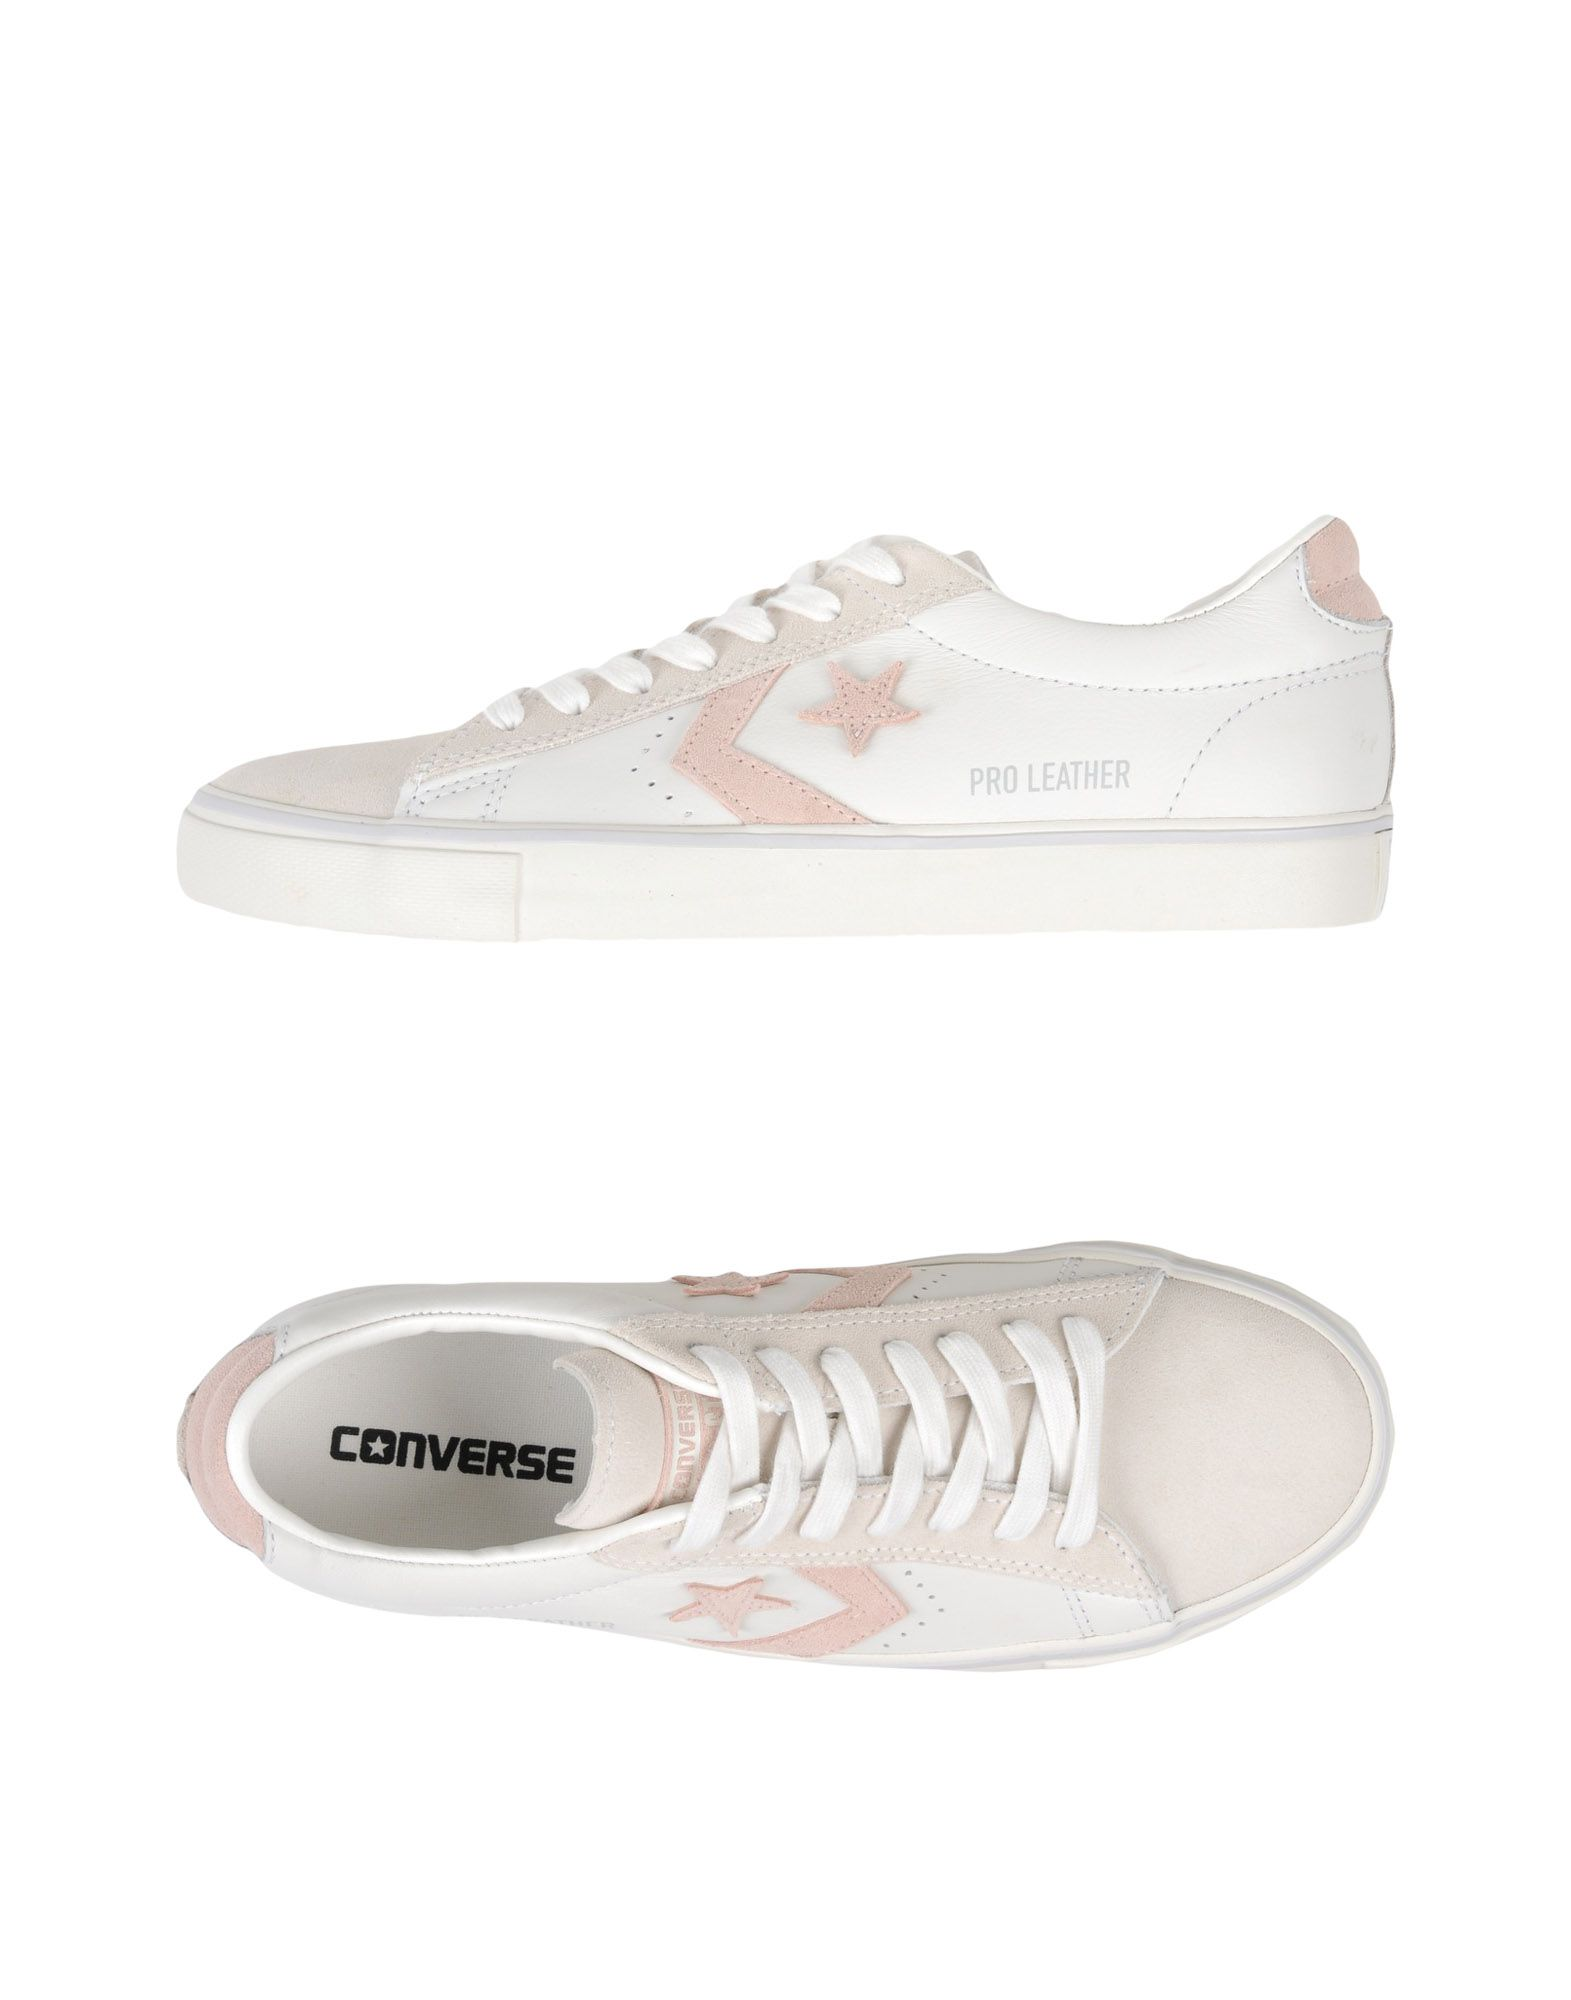 Sneakers Converse All Star Pro Leather Vulc Ox Leather/Suede - Donna - Acquista online su